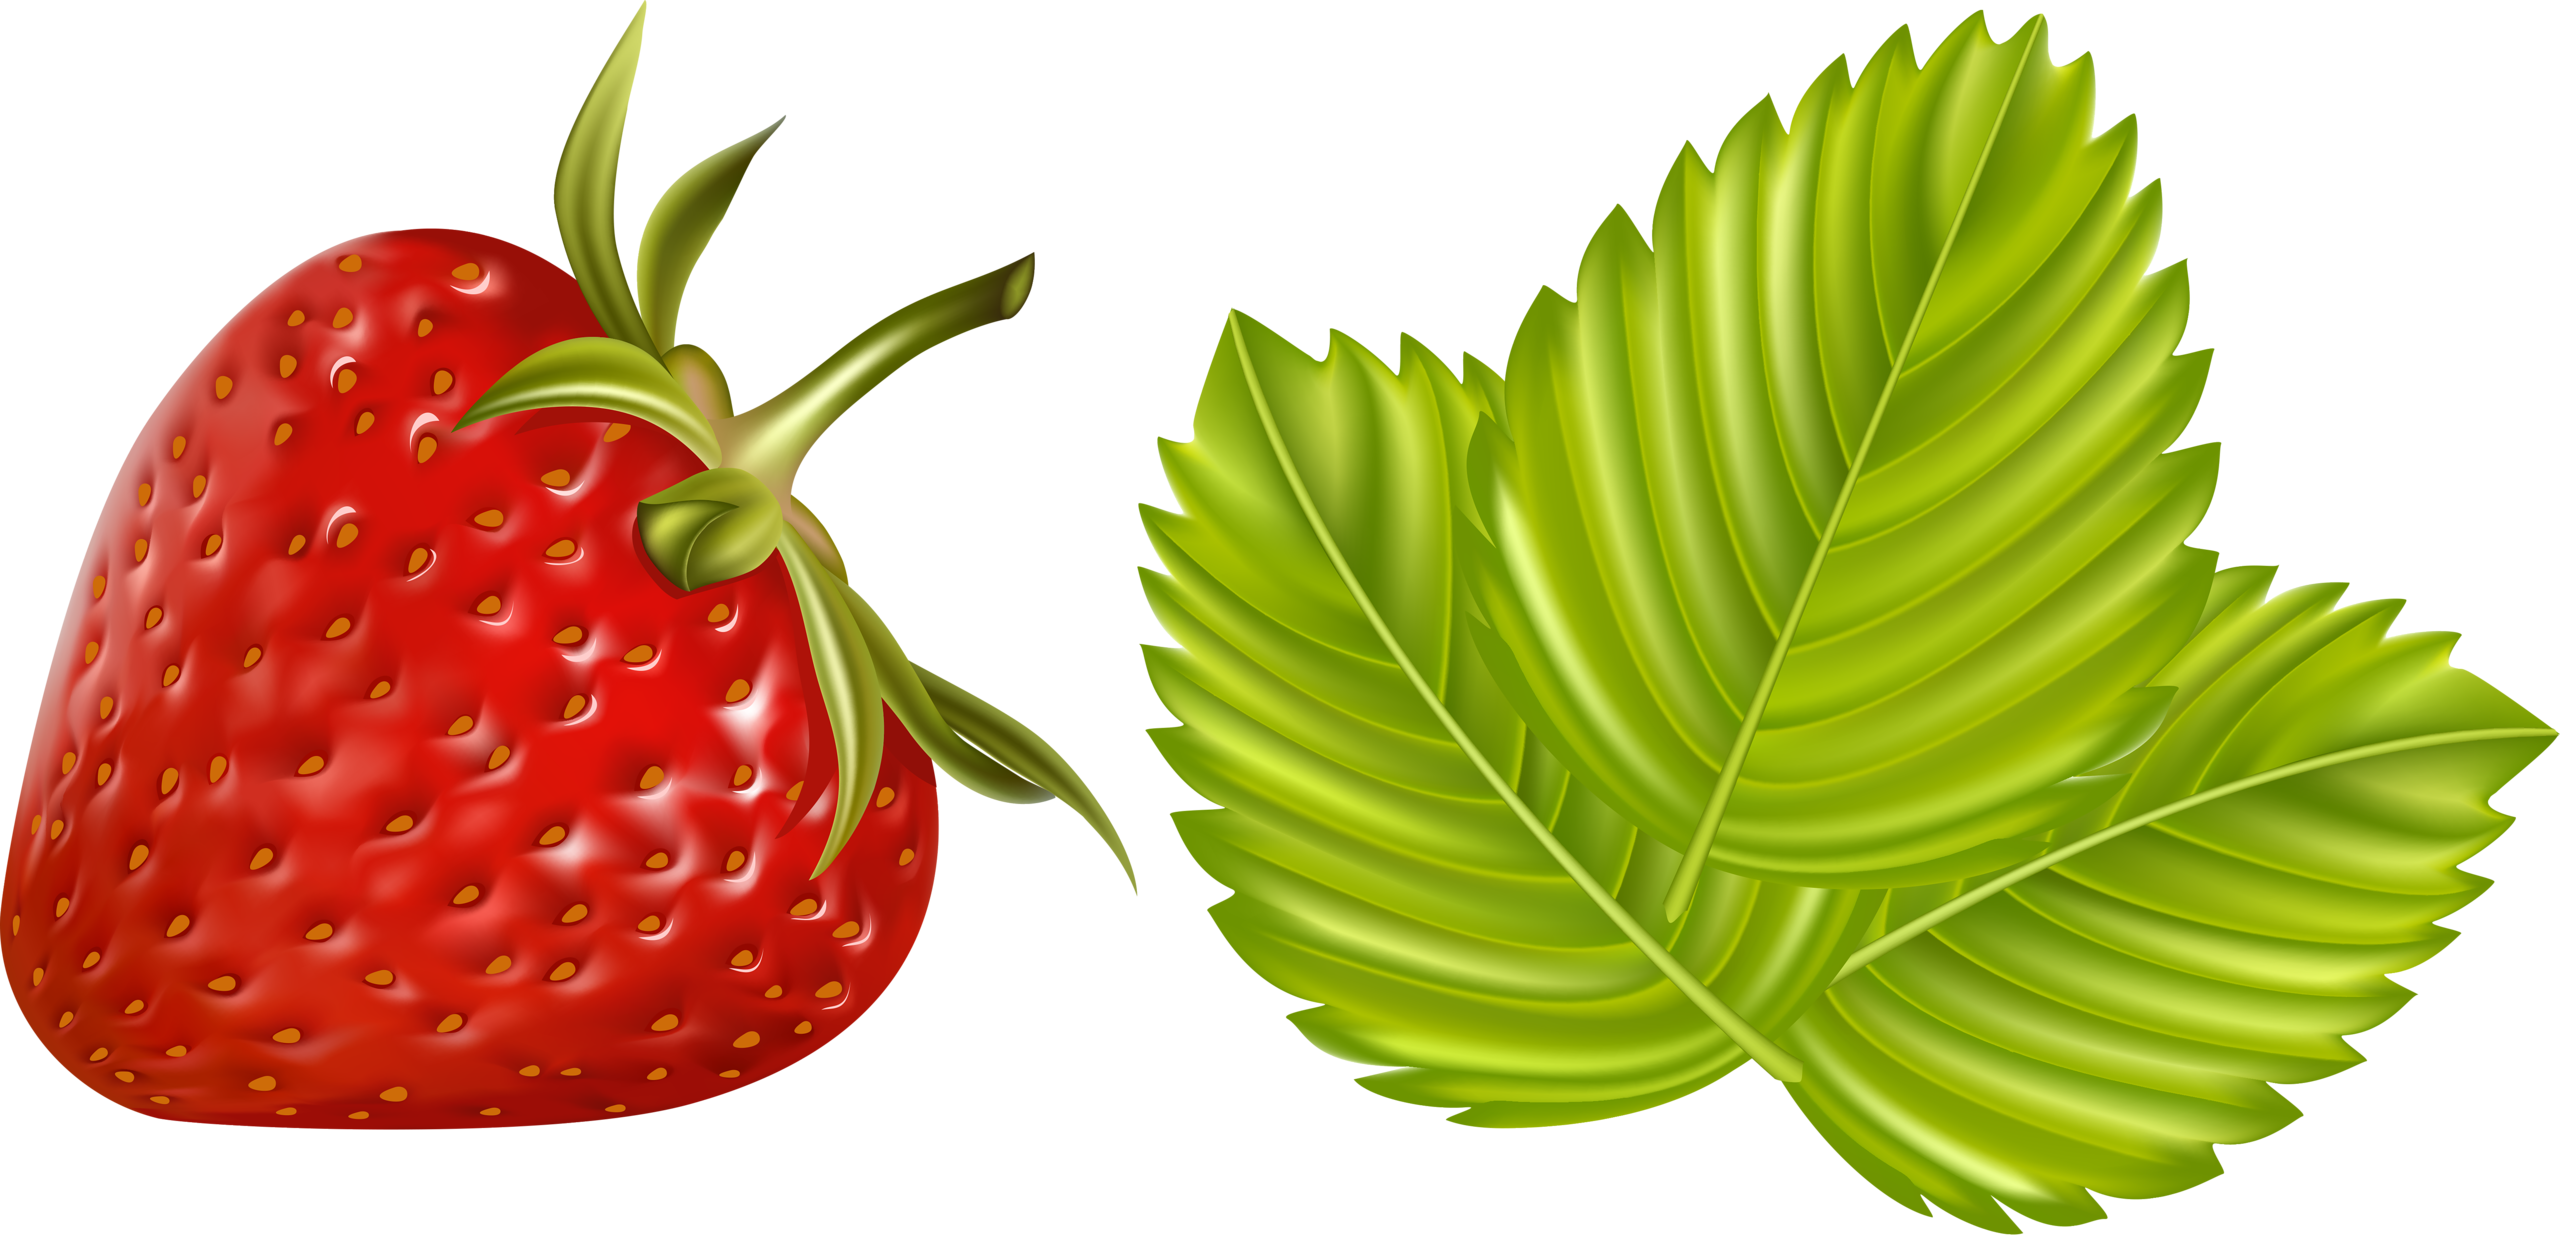 Fruits vegetables and berries. Strawberries clipart 8 object